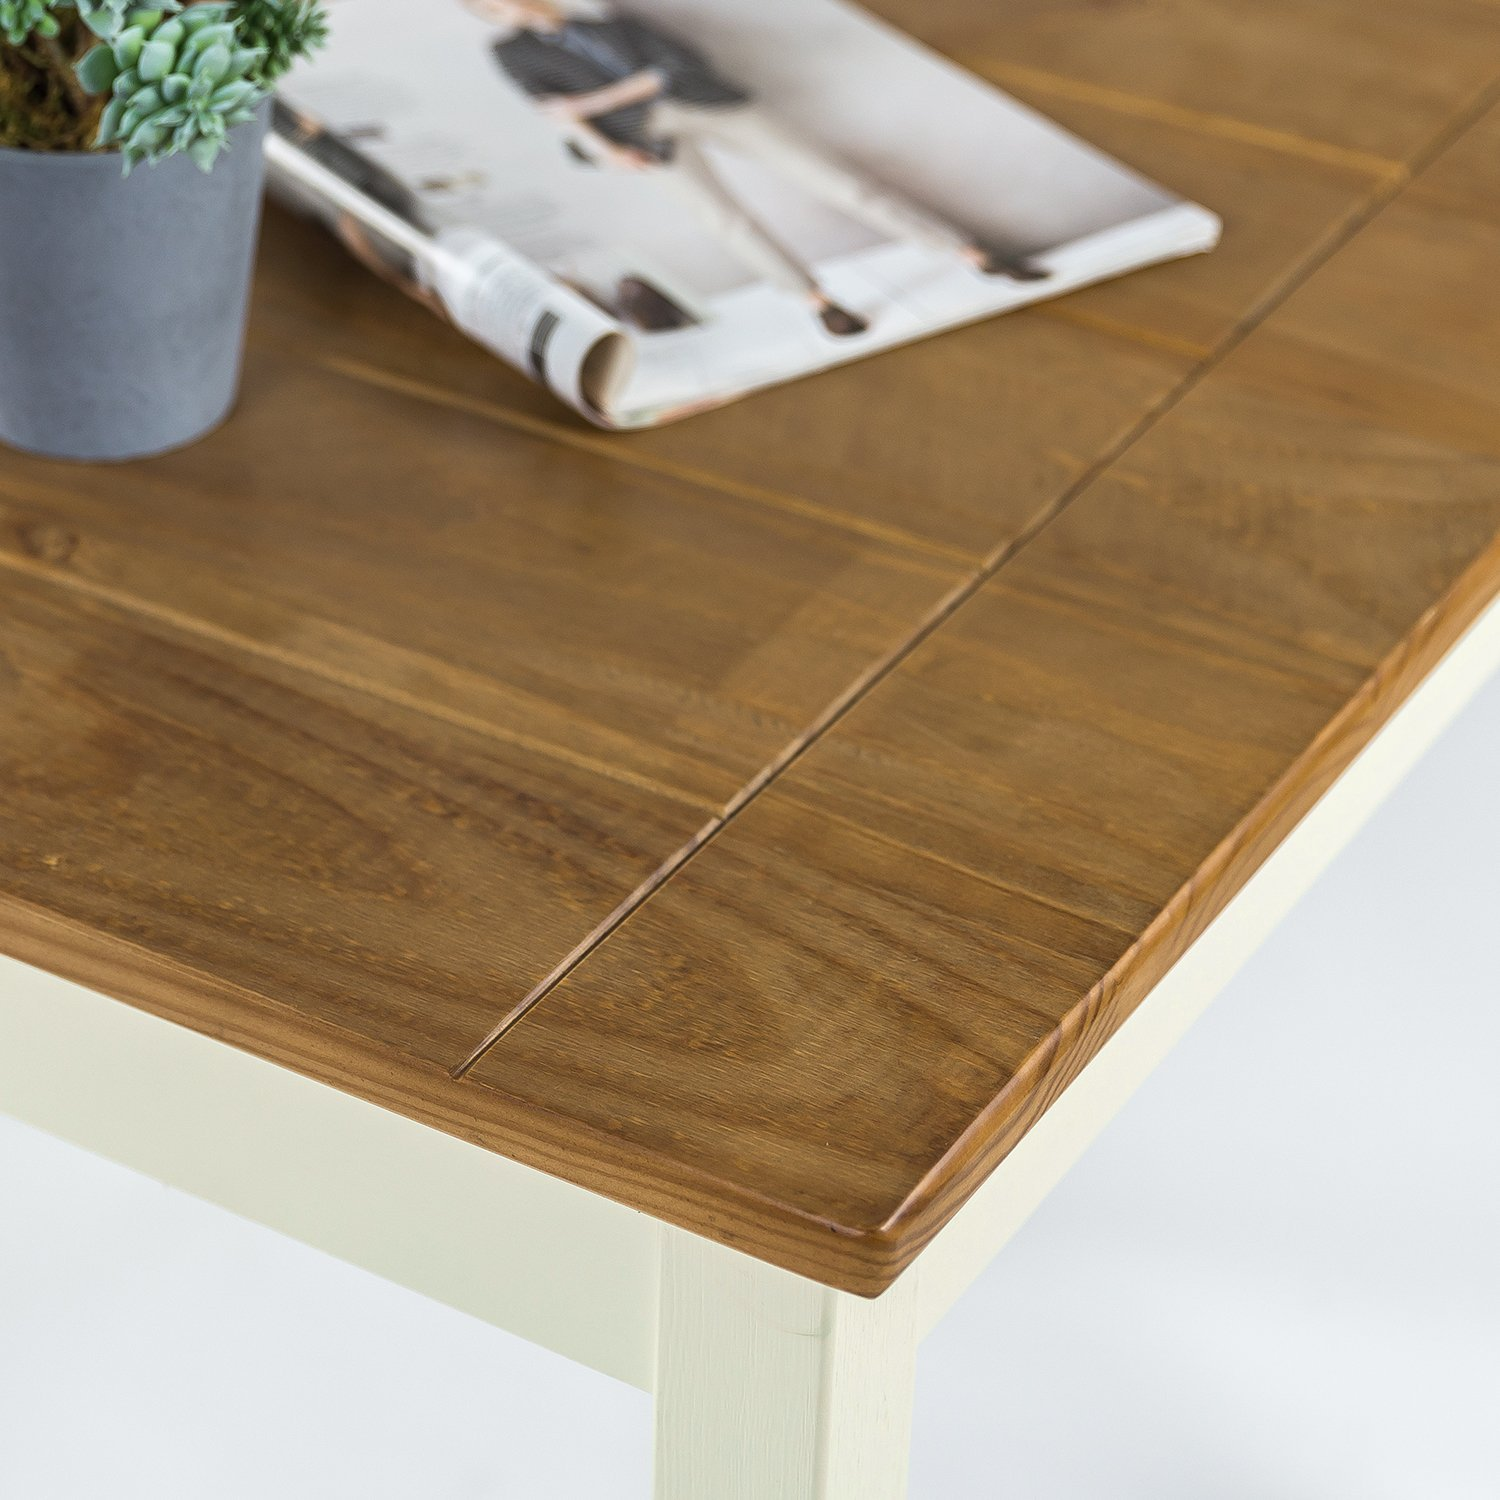 Zinus Farmhouse Square Wood Dining Table by Zinus (Image #4)